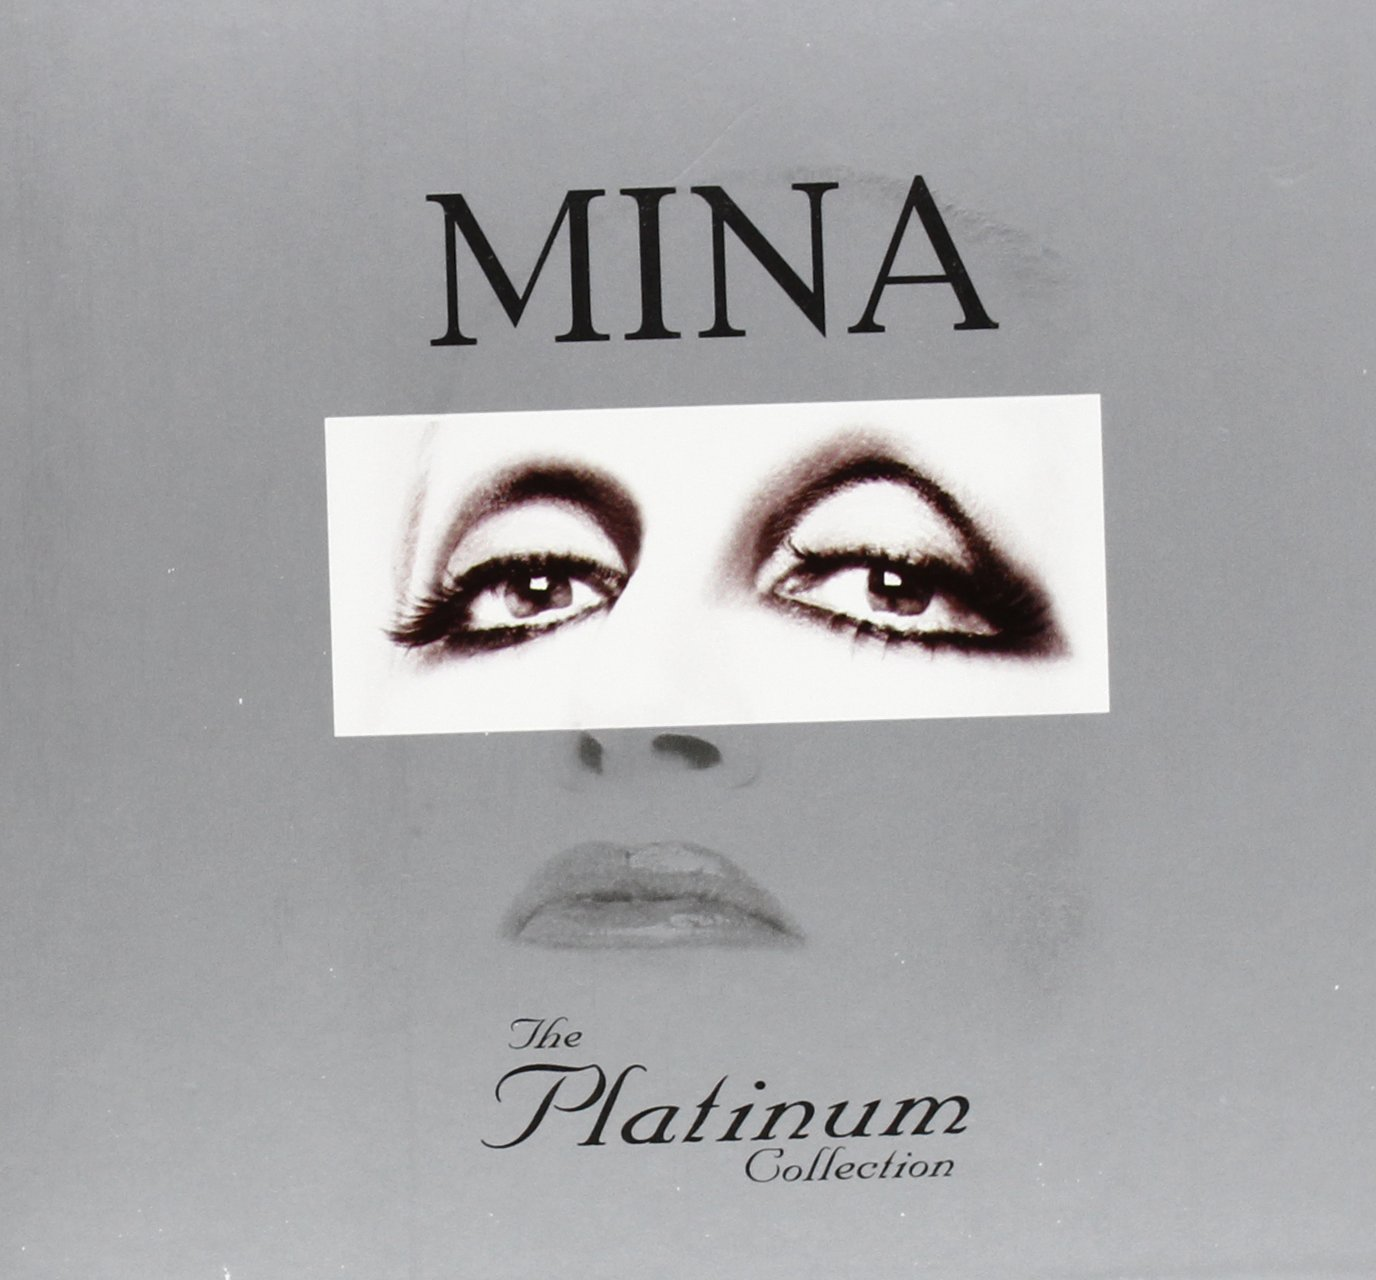 The Platinum Collection by Mina